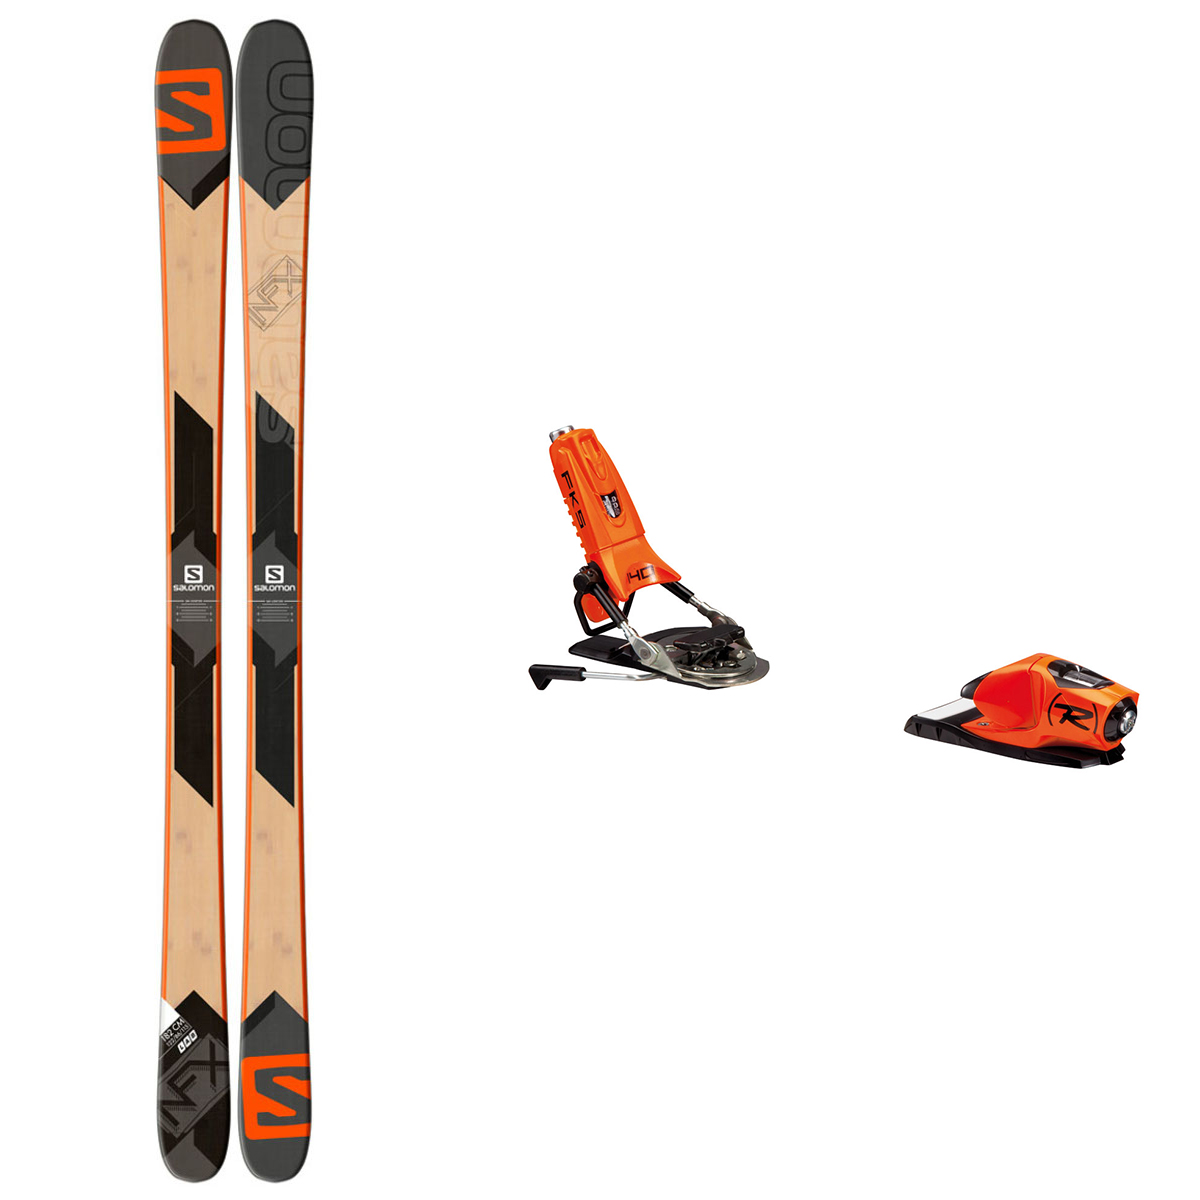 salomon nfx lab 2015 w rossignol fks140 binding package. Black Bedroom Furniture Sets. Home Design Ideas